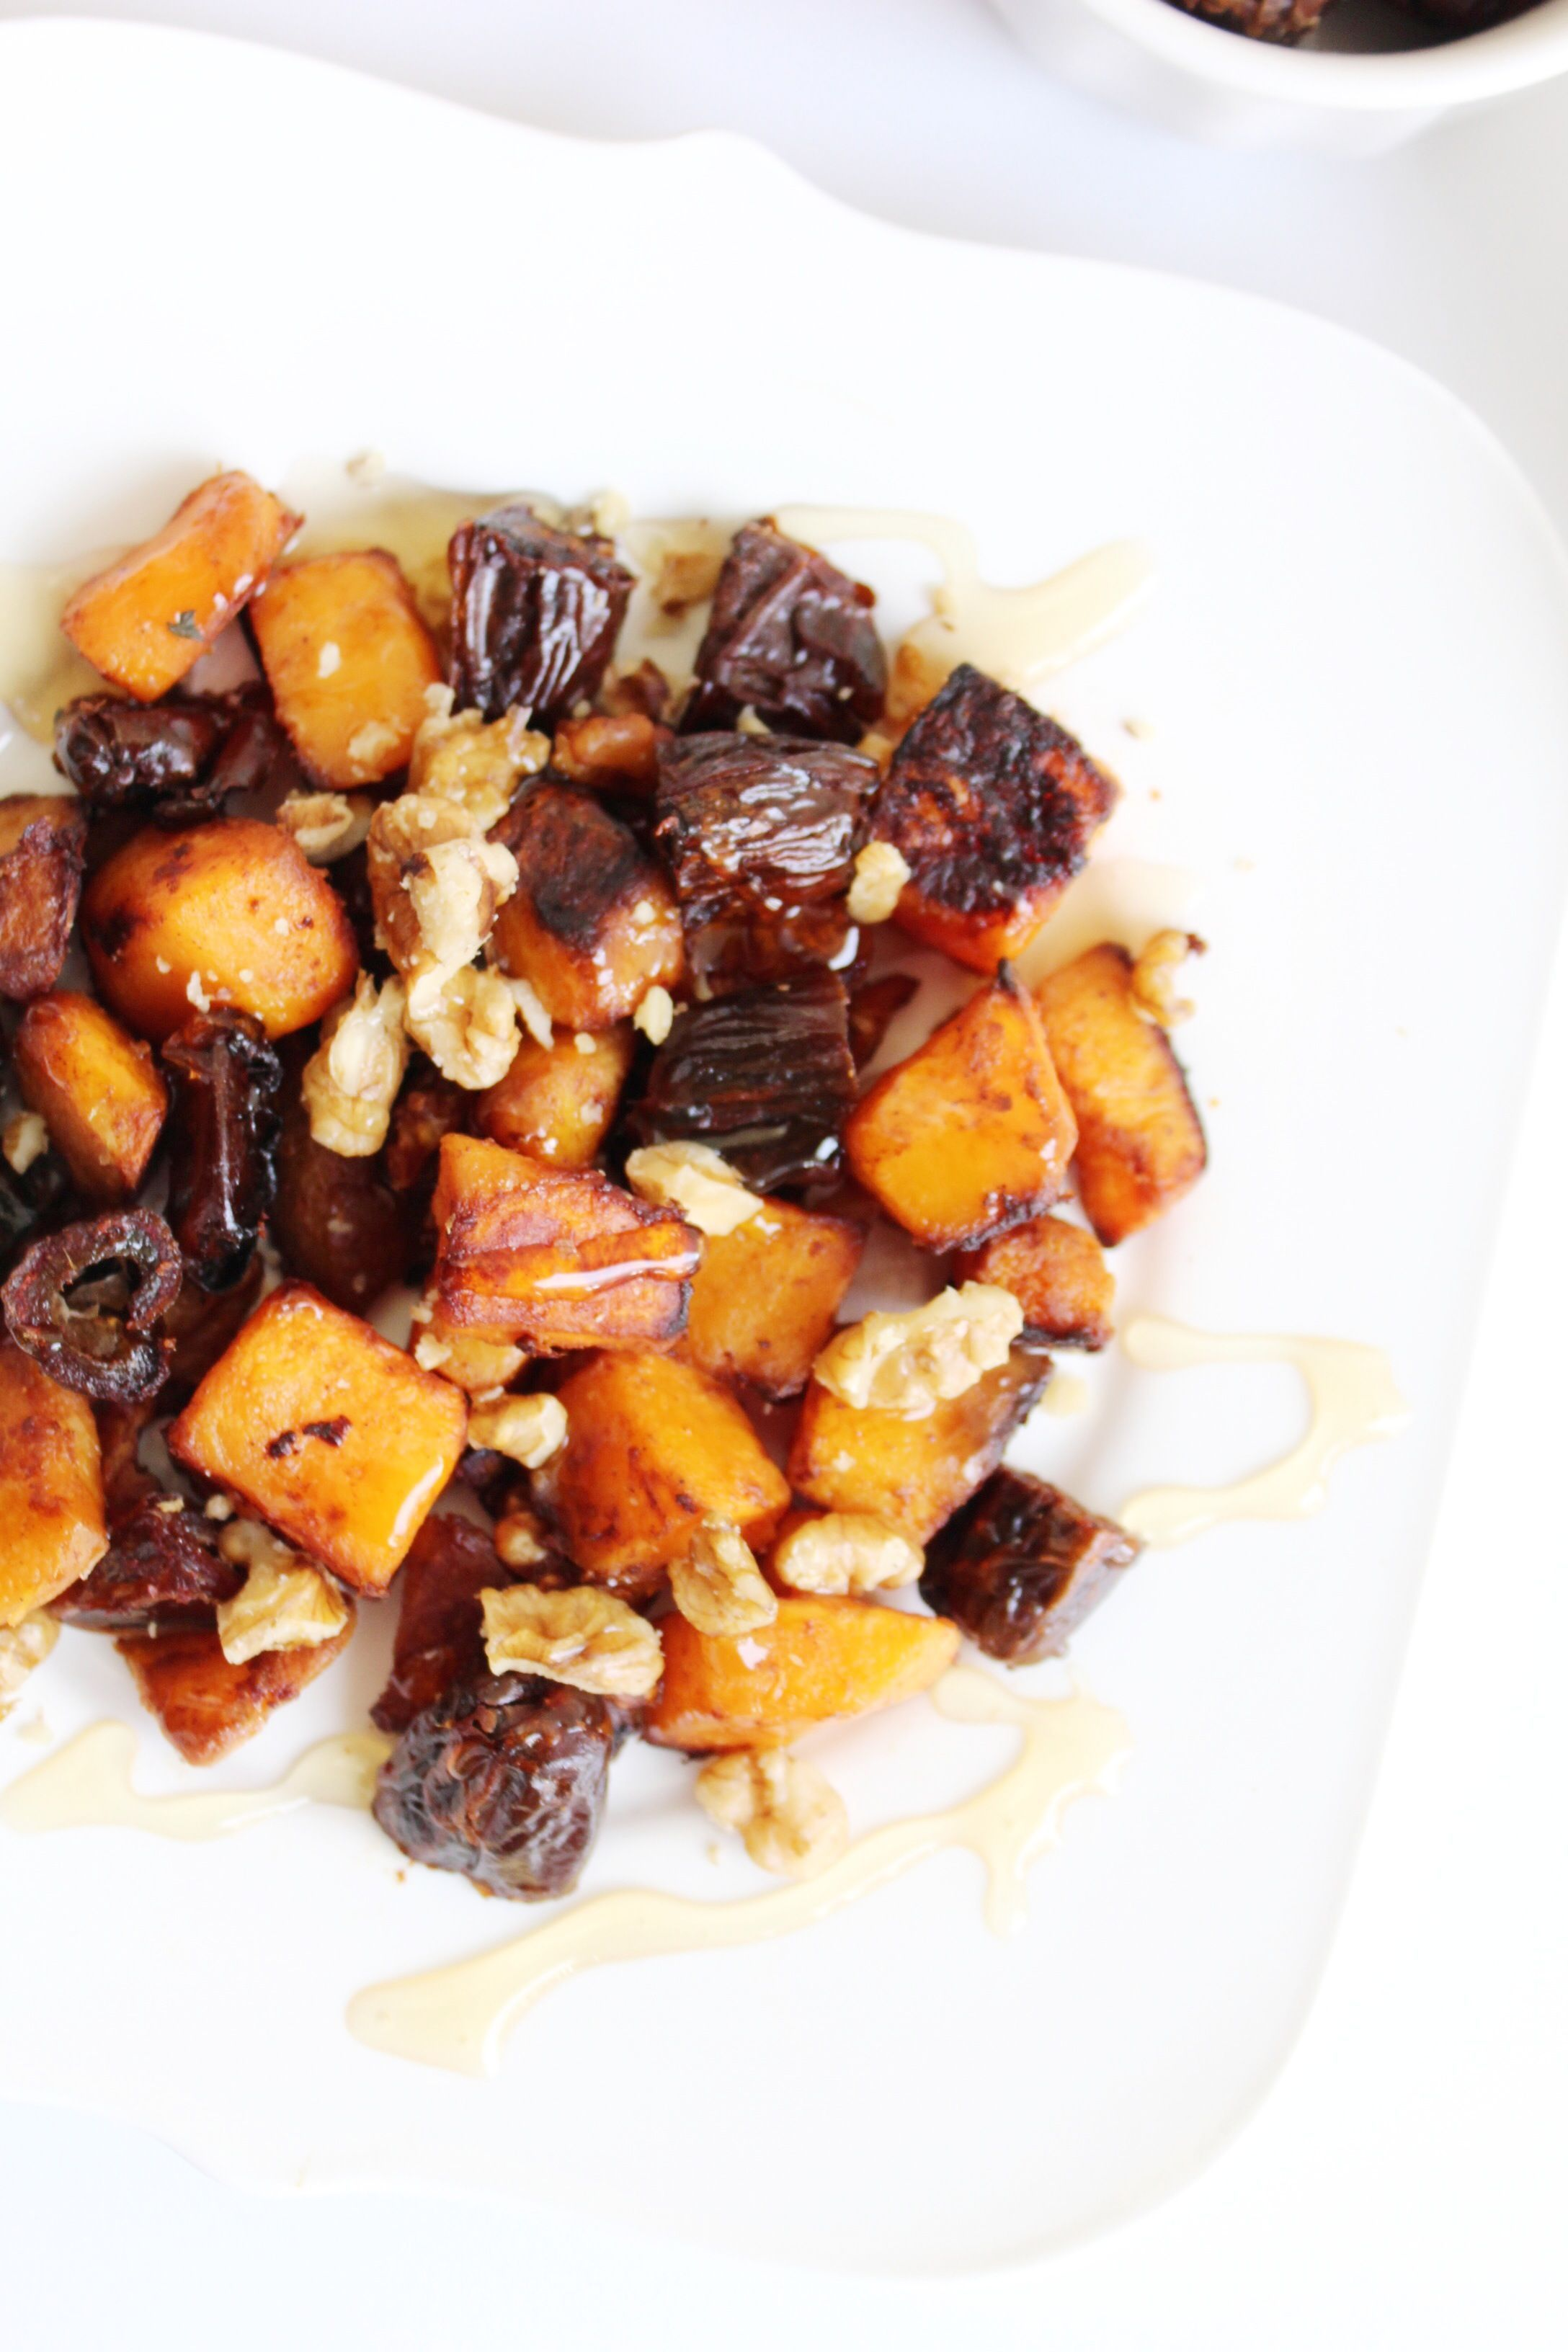 Honey Roasted Butternut Squash with Dates and Walnuts - Nutrition Happens #walnutsnutrition Honey Roasted Butternut Squash with Dates and Walnuts - Nutrition Happens #walnutsnutrition Honey Roasted Butternut Squash with Dates and Walnuts - Nutrition Happens #walnutsnutrition Honey Roasted Butternut Squash with Dates and Walnuts - Nutrition Happens #walnutsnutrition Honey Roasted Butternut Squash with Dates and Walnuts - Nutrition Happens #walnutsnutrition Honey Roasted Butternut Squash with Date #walnutsnutrition